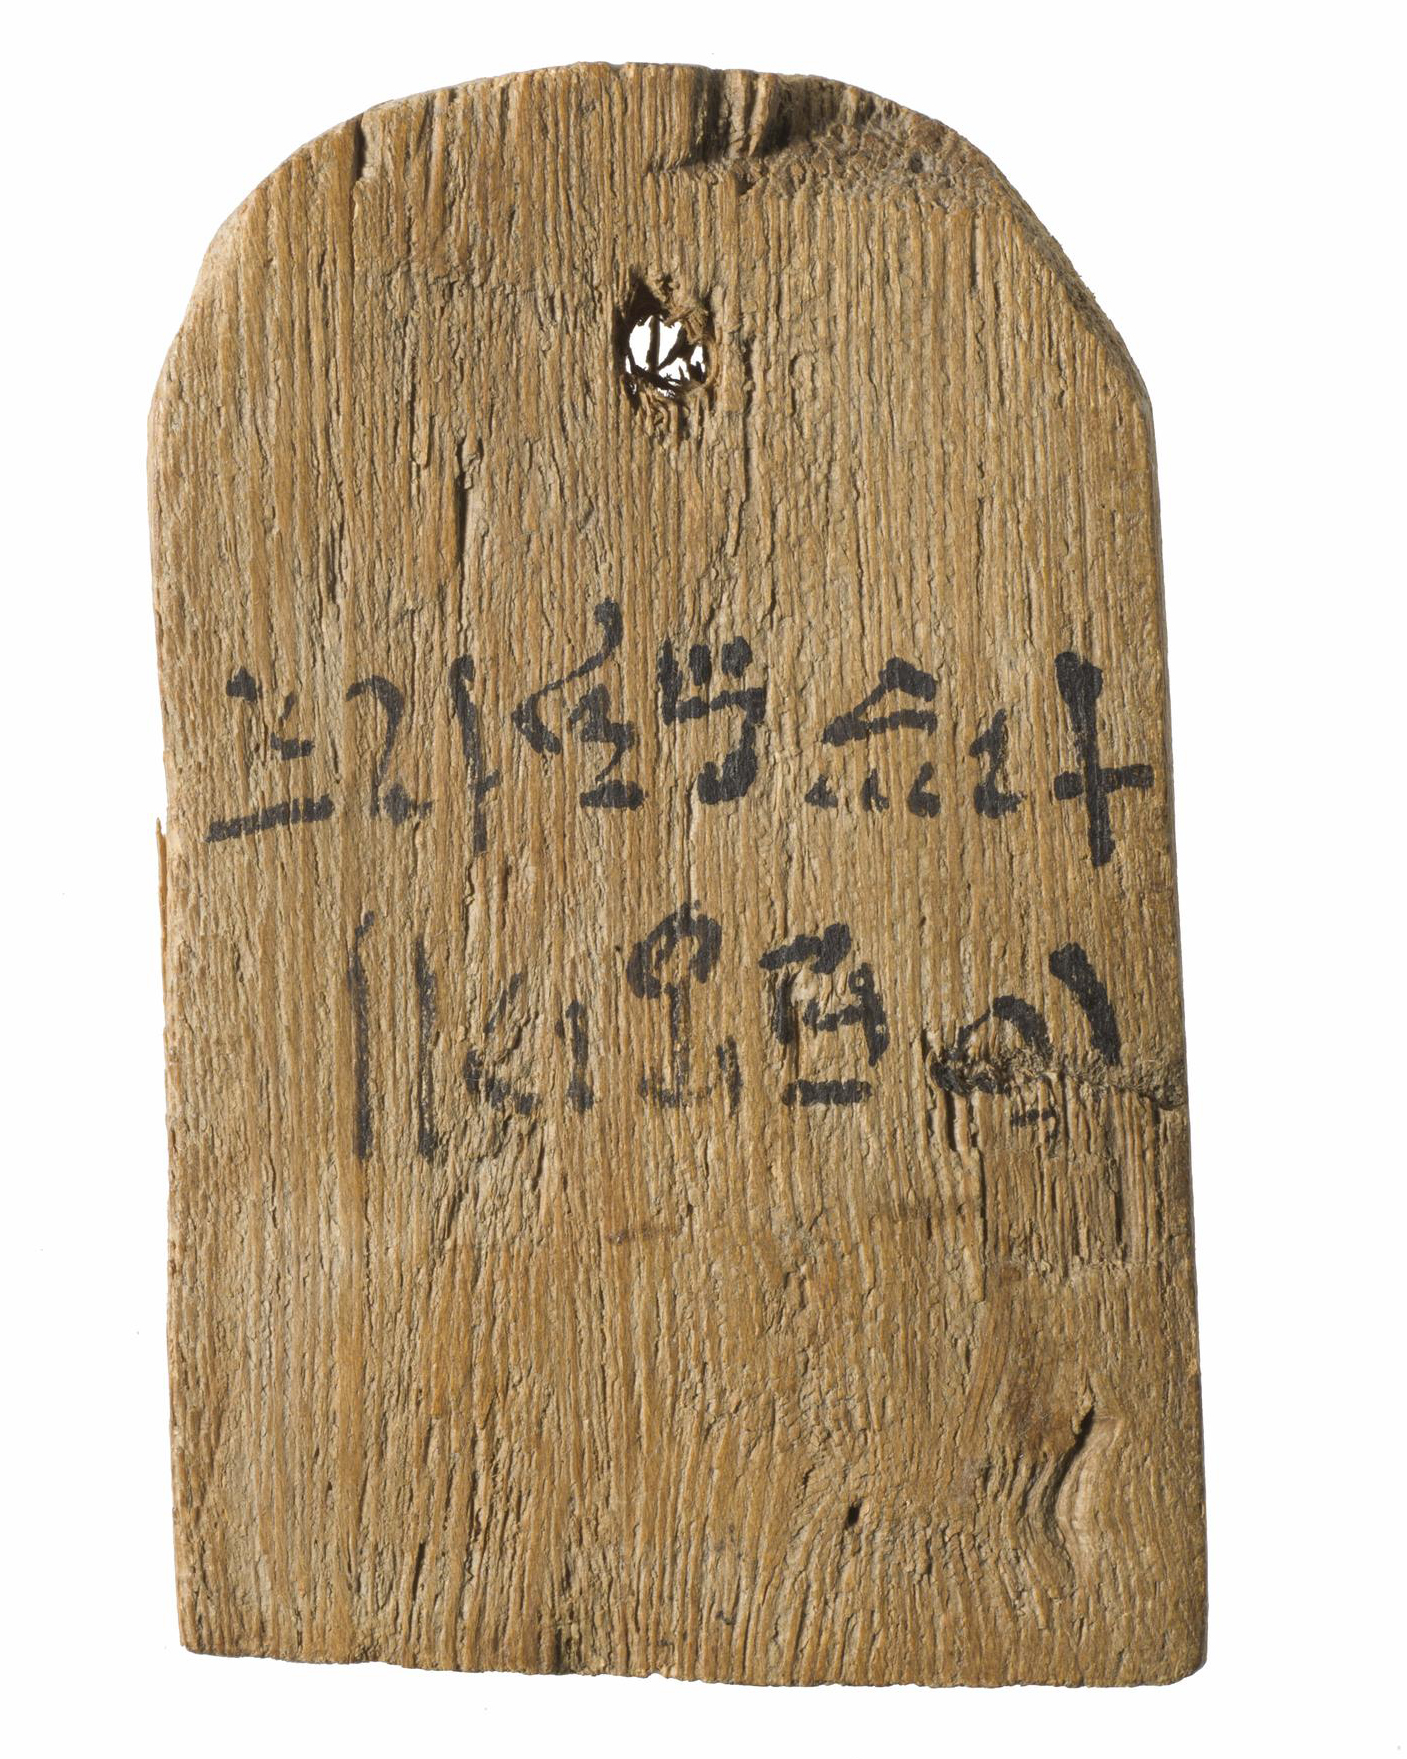 Mummy-label of wood inscribed in hieratic with black ink with the name of Princess Pyihia, one of the daughters of King Tuthmose IV: Sheikh Abd el-Qurna, Thebes, Egypt, c.1390–1352BC.